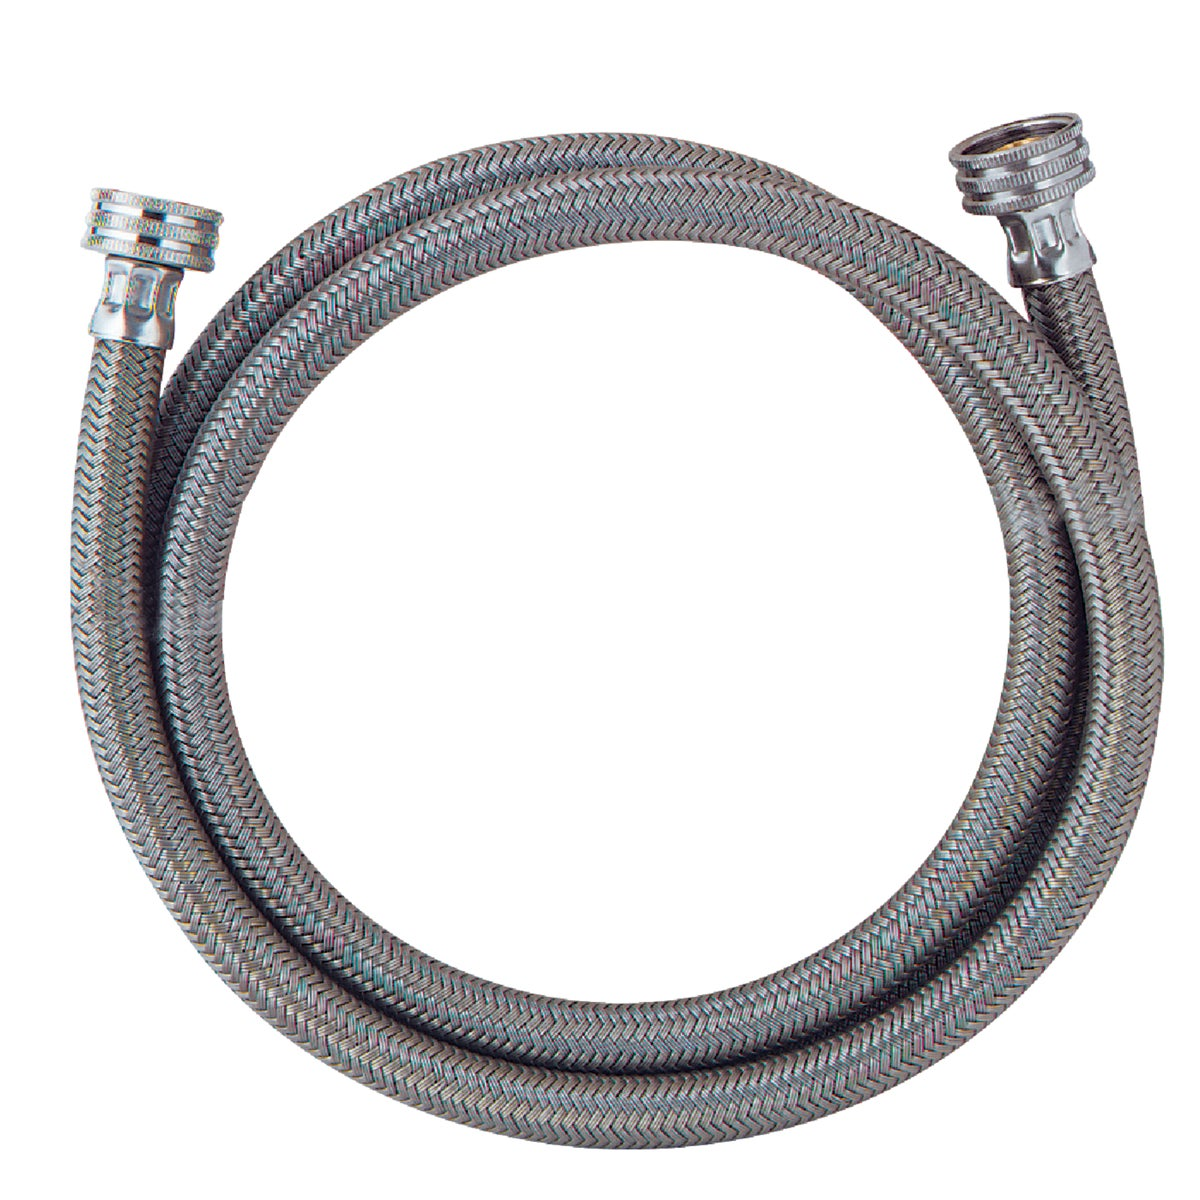 6' WASH HOSE - BL12-72WA P by Brass Craft